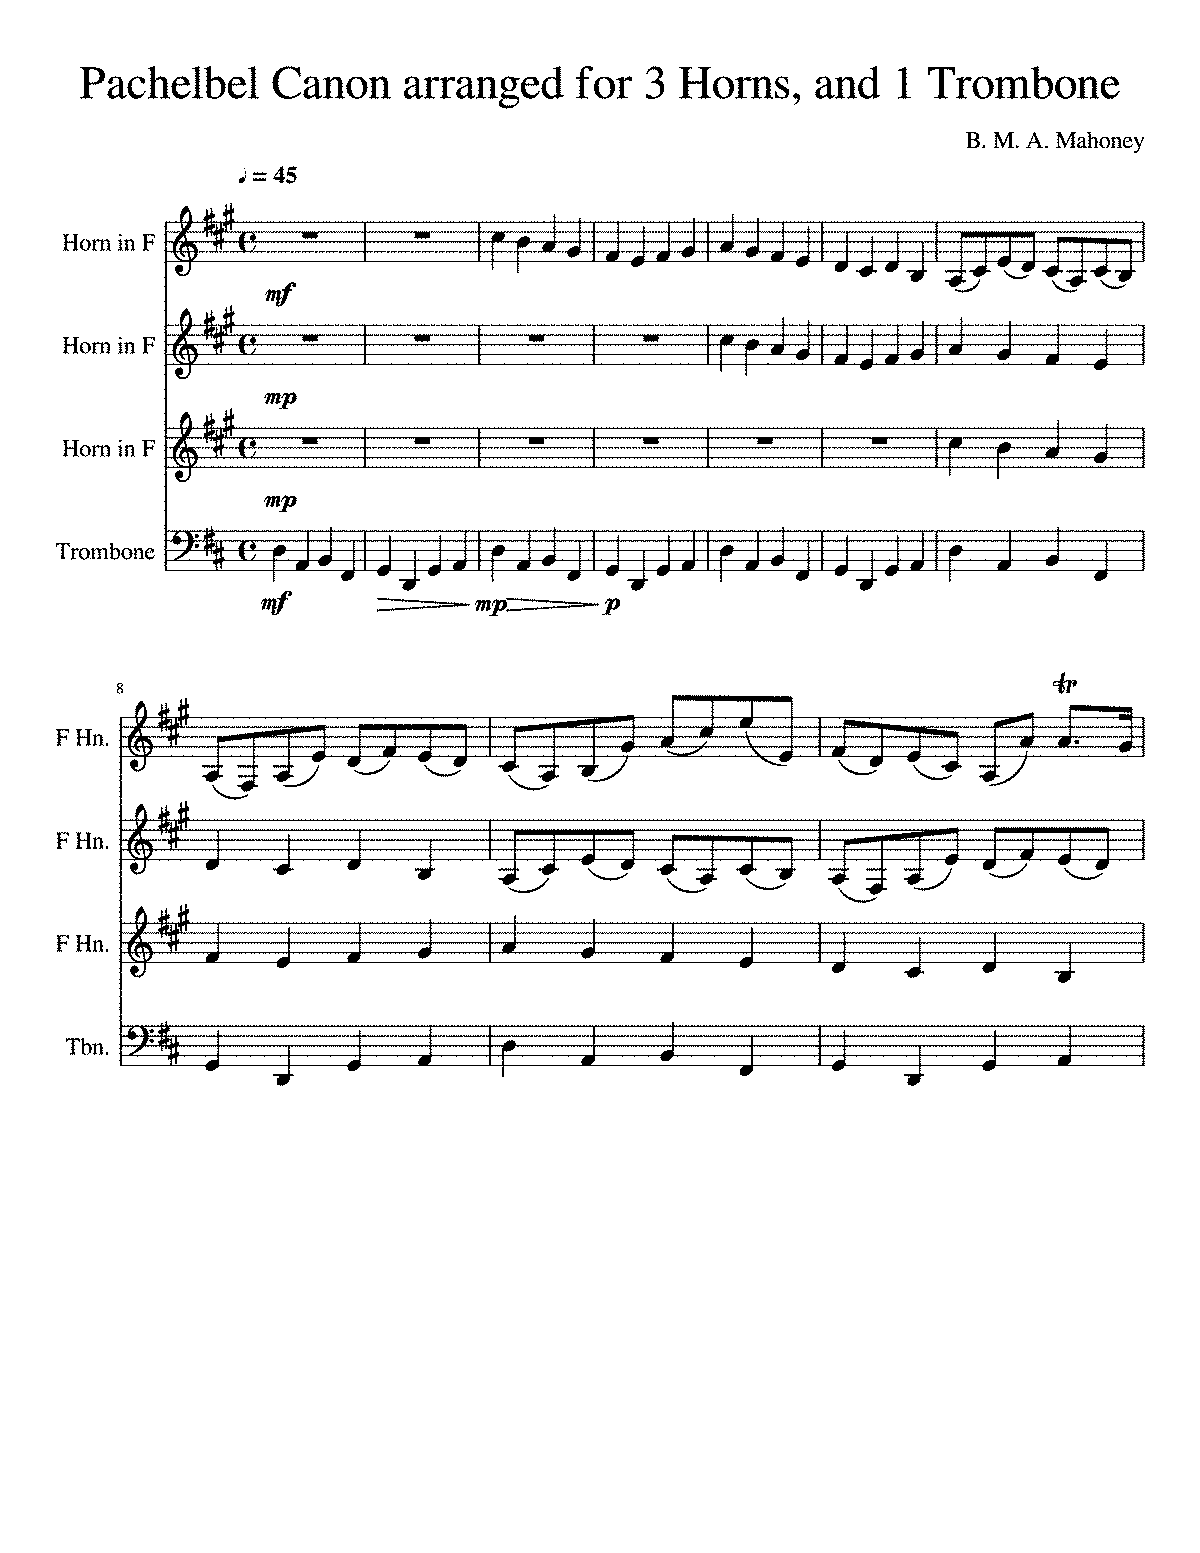 PMLP04611-Canon in D Pachelbel Arranged for 3 Horns and 1 Trombone.pdf